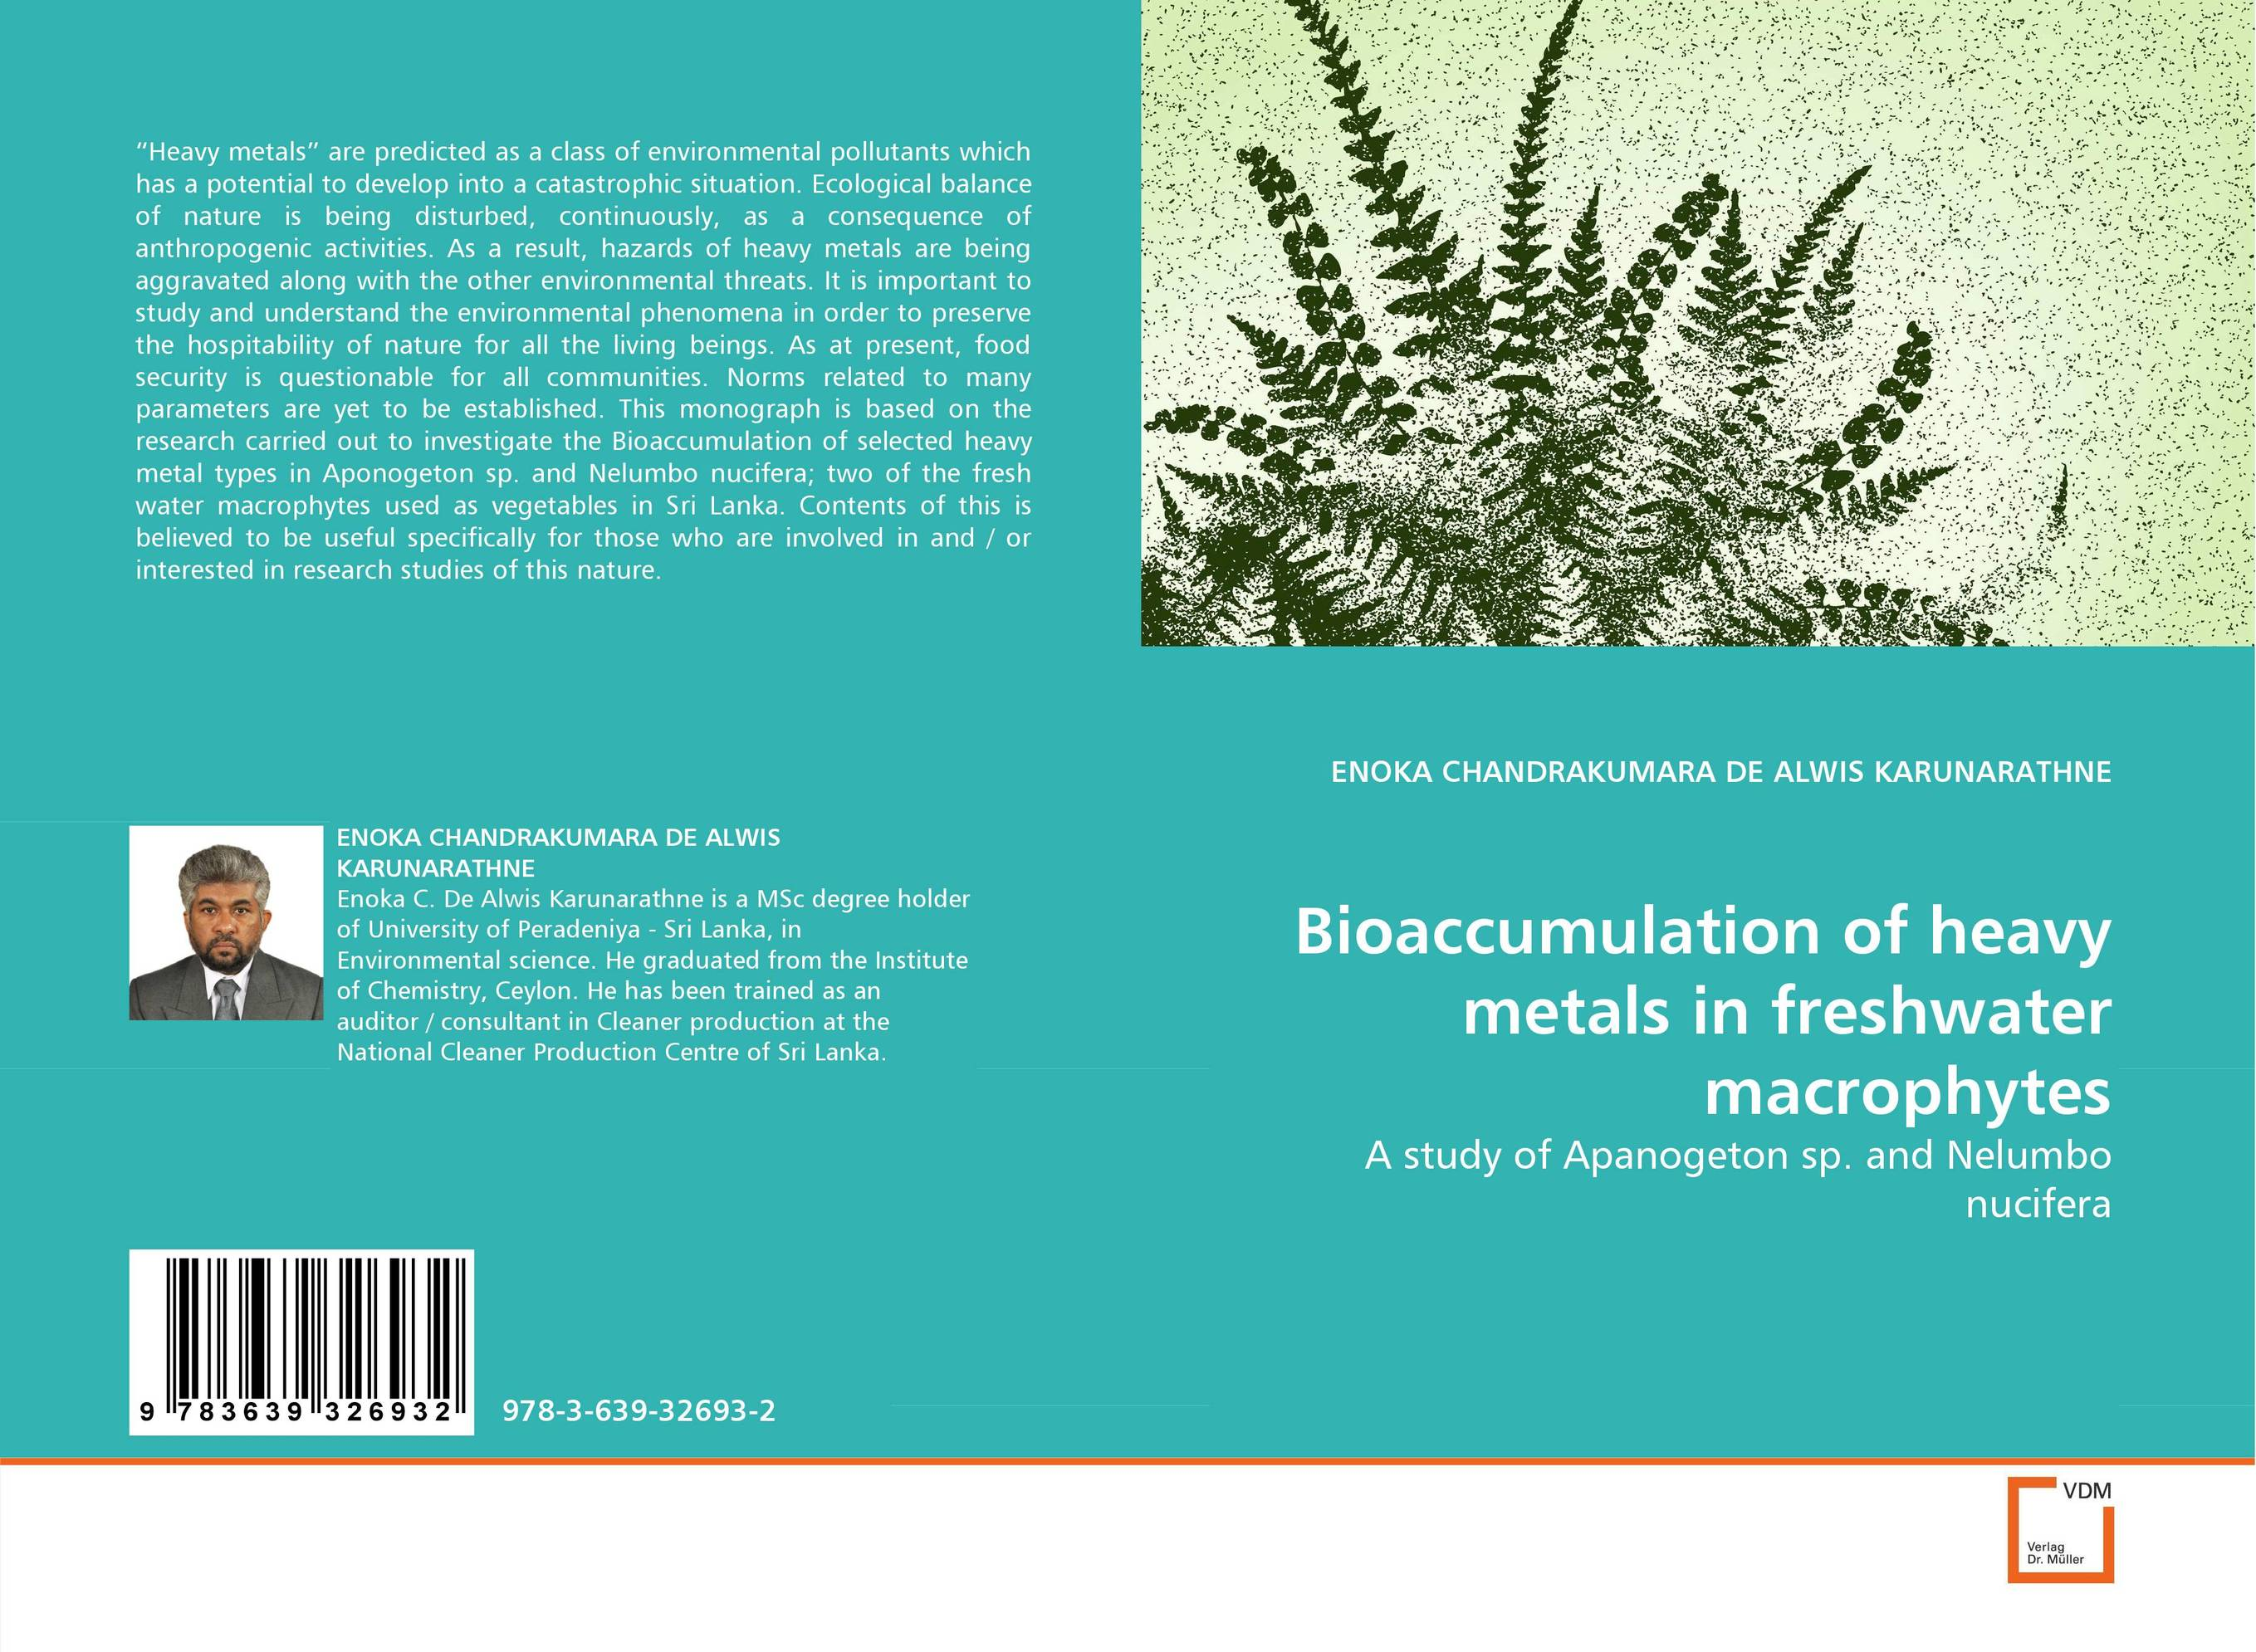 Bioaccumulation of heavy metals in freshwater macrophytes marwan a ibrahim effect of heavy metals on haematological and testicular functions